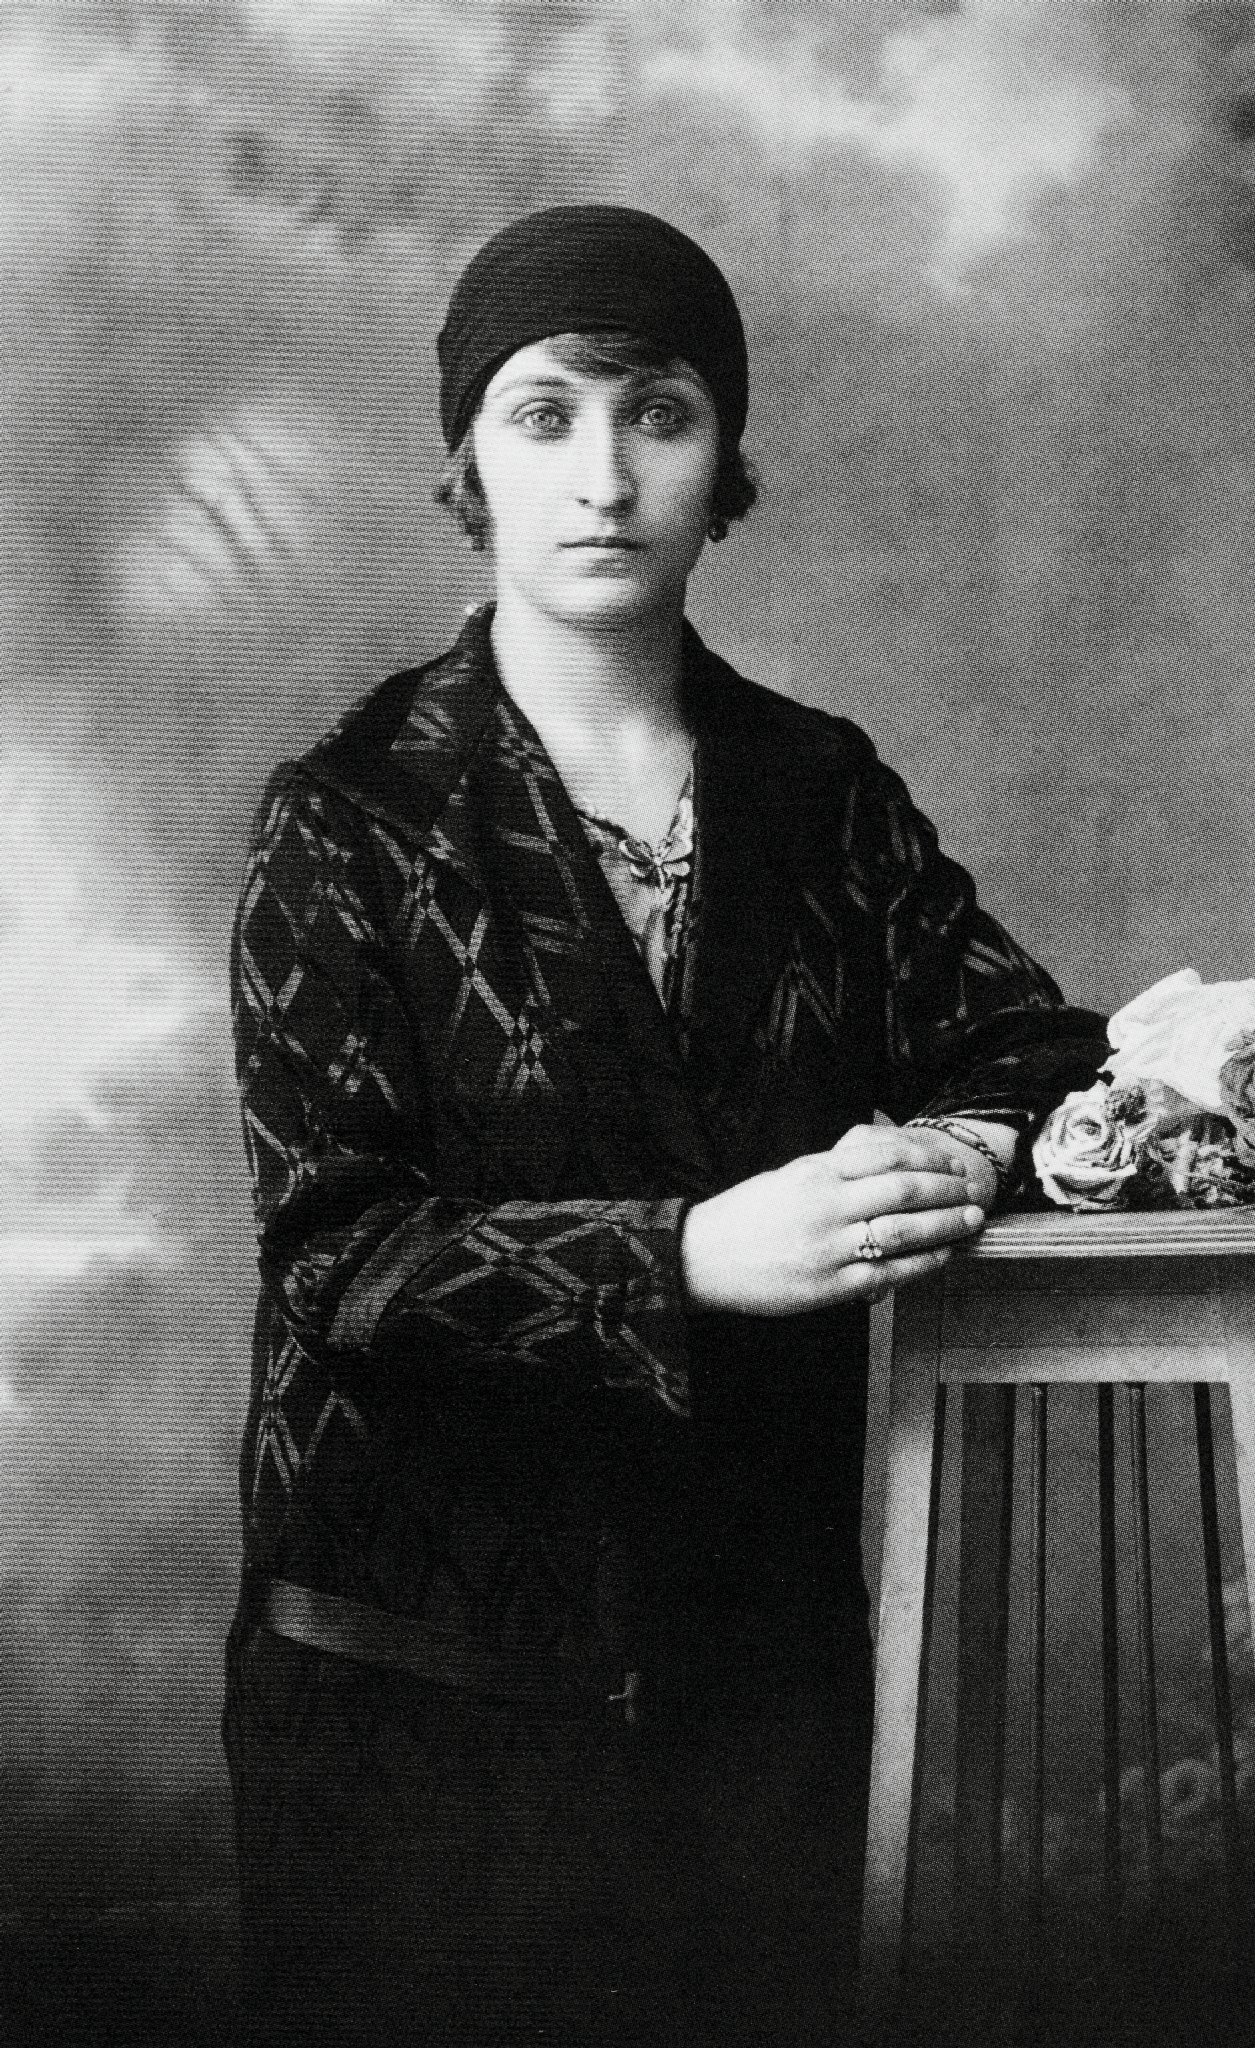 Sadberk Koç photographed at the end of the 1920s.